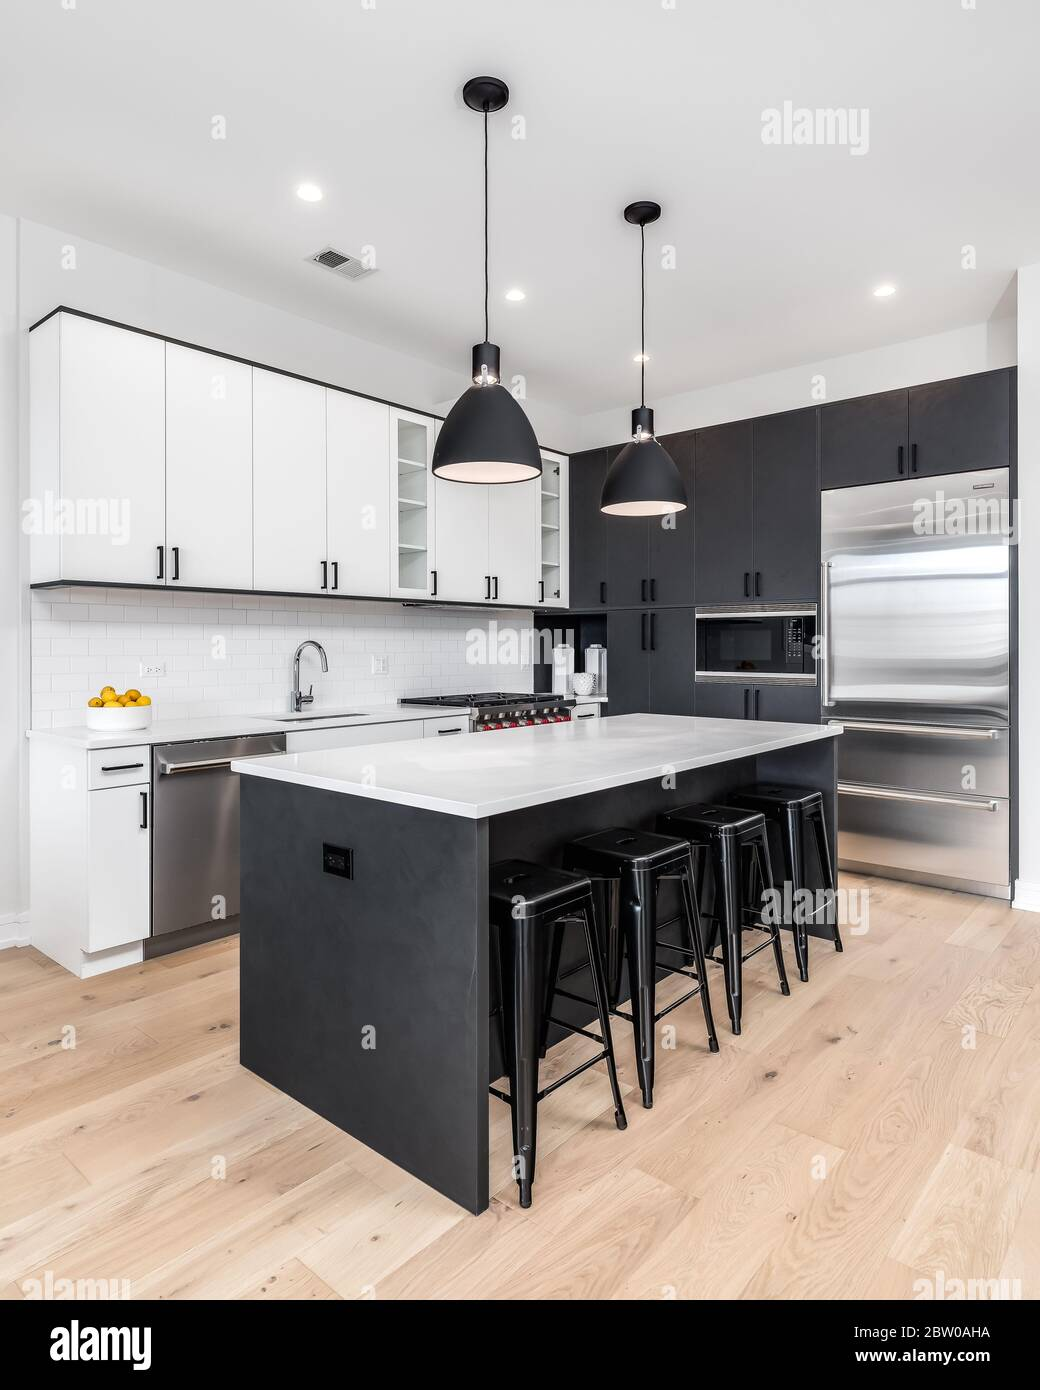 A Modern Kitchen With Black And White Cabinets Stainless Steel Wolf And Sub Zero Appliances And Bar Stools Sitting At The White Granite Counter Top Stock Photo Alamy